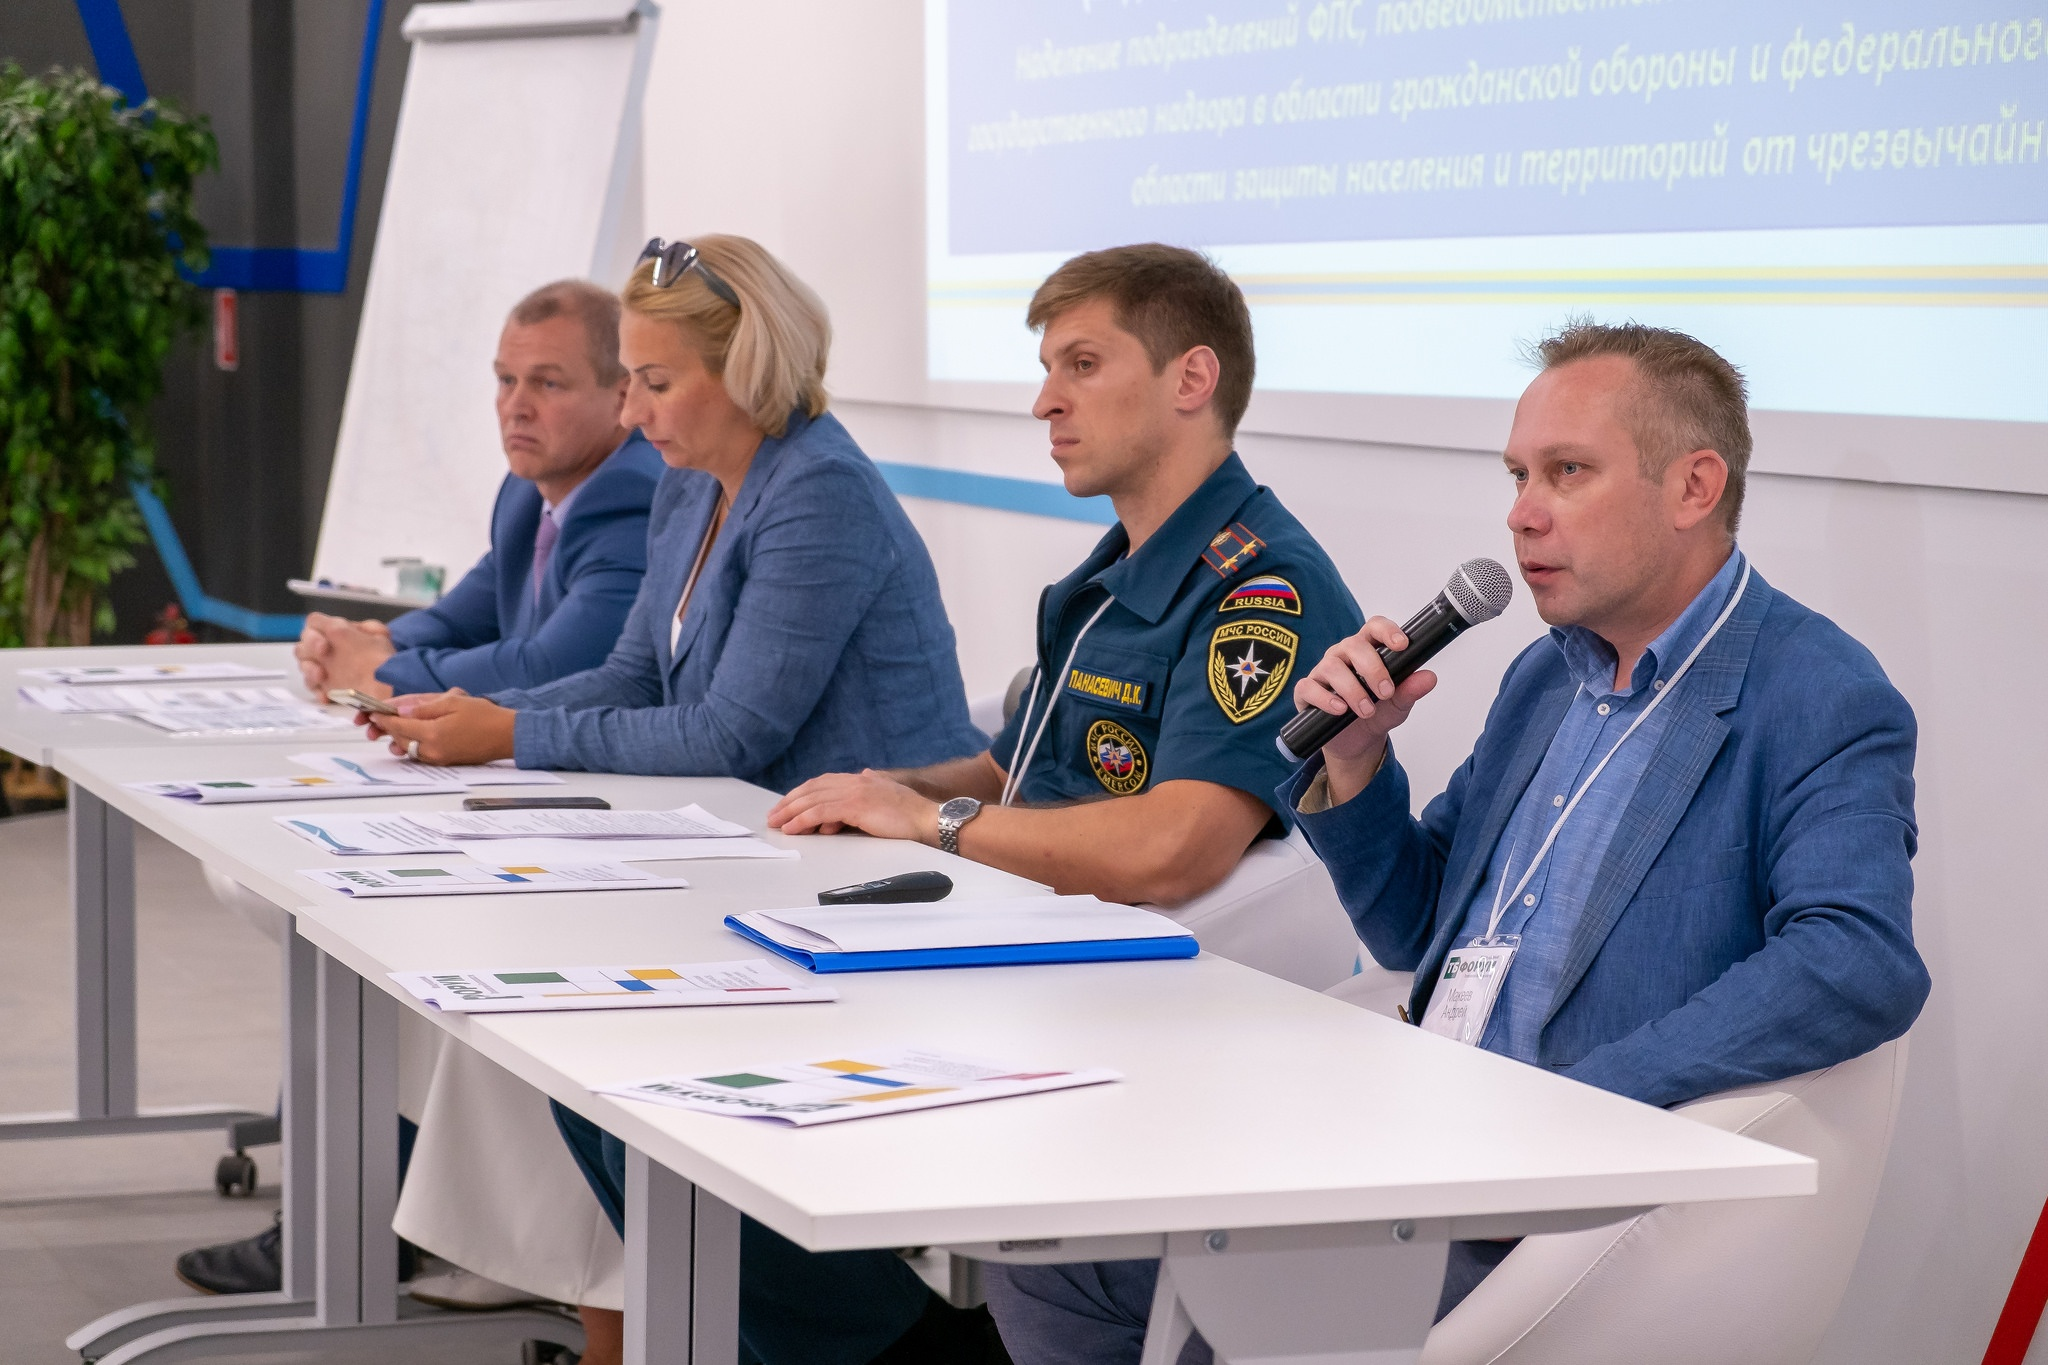 Kemerovo lessons: regulators, security directors and developers will discuss fire safety practices in places with massive stay of people at TB Forum 2019